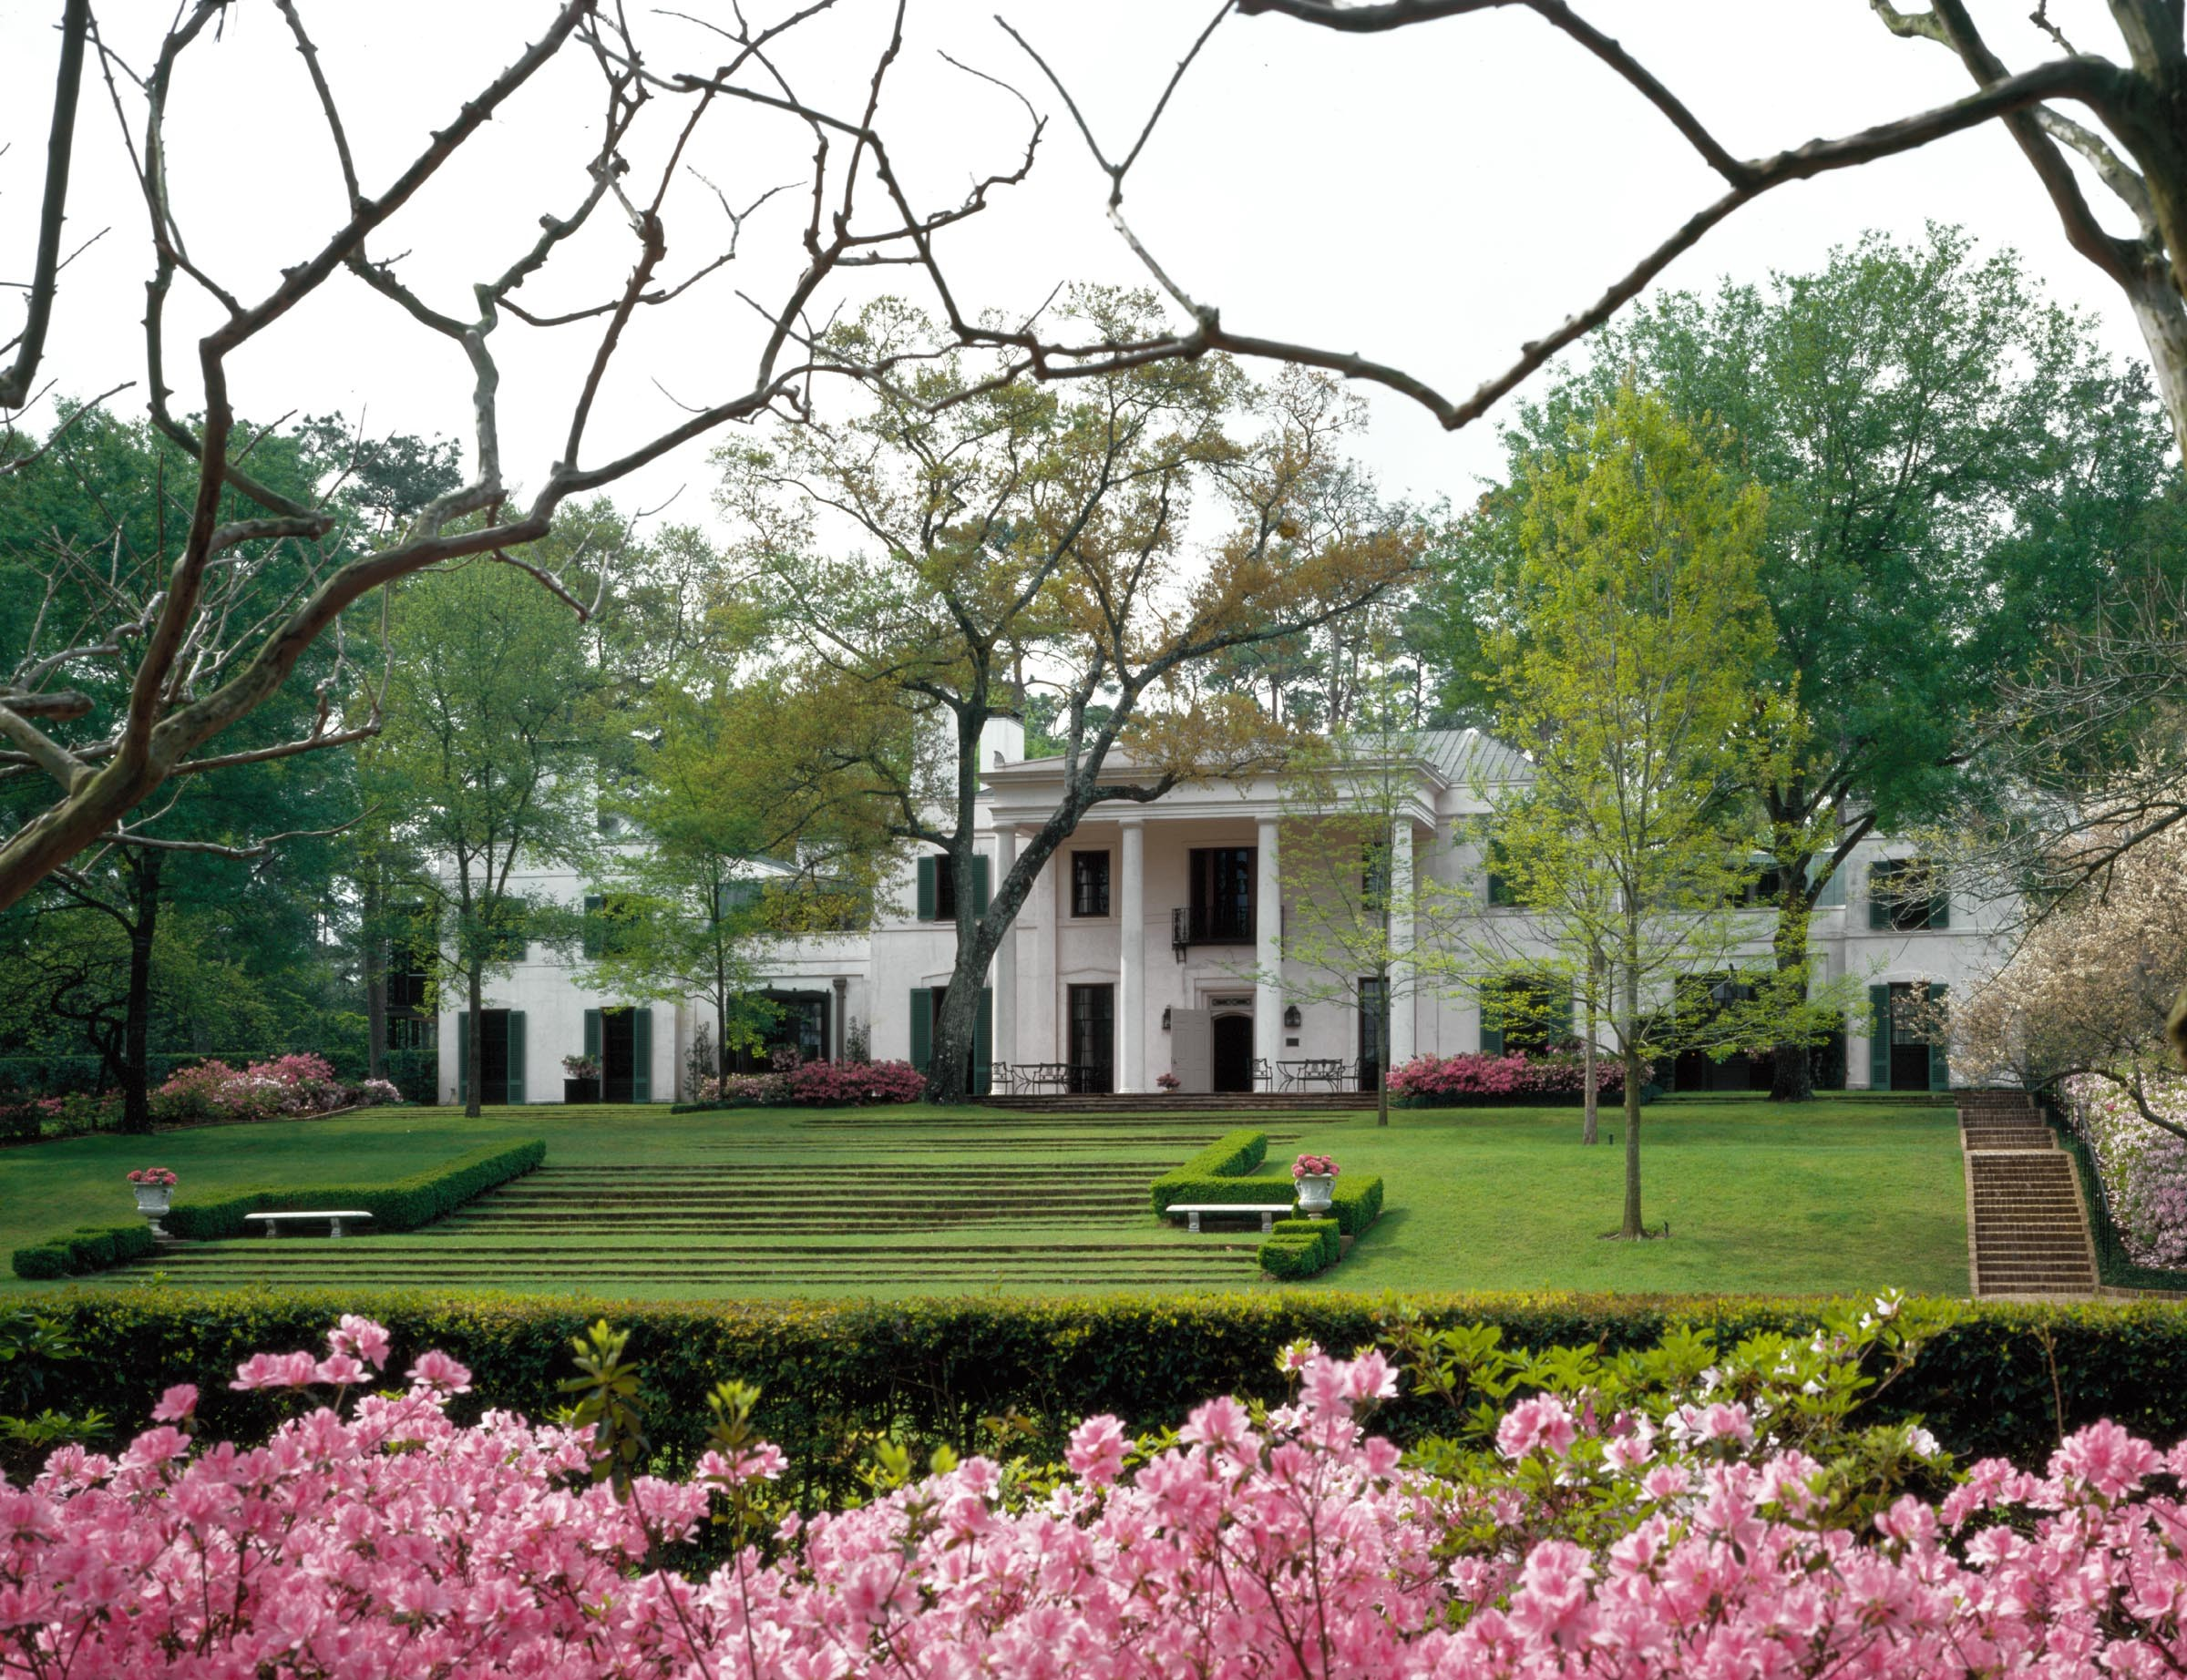 entertaining - bayou bend - facade / exterior with azaleas